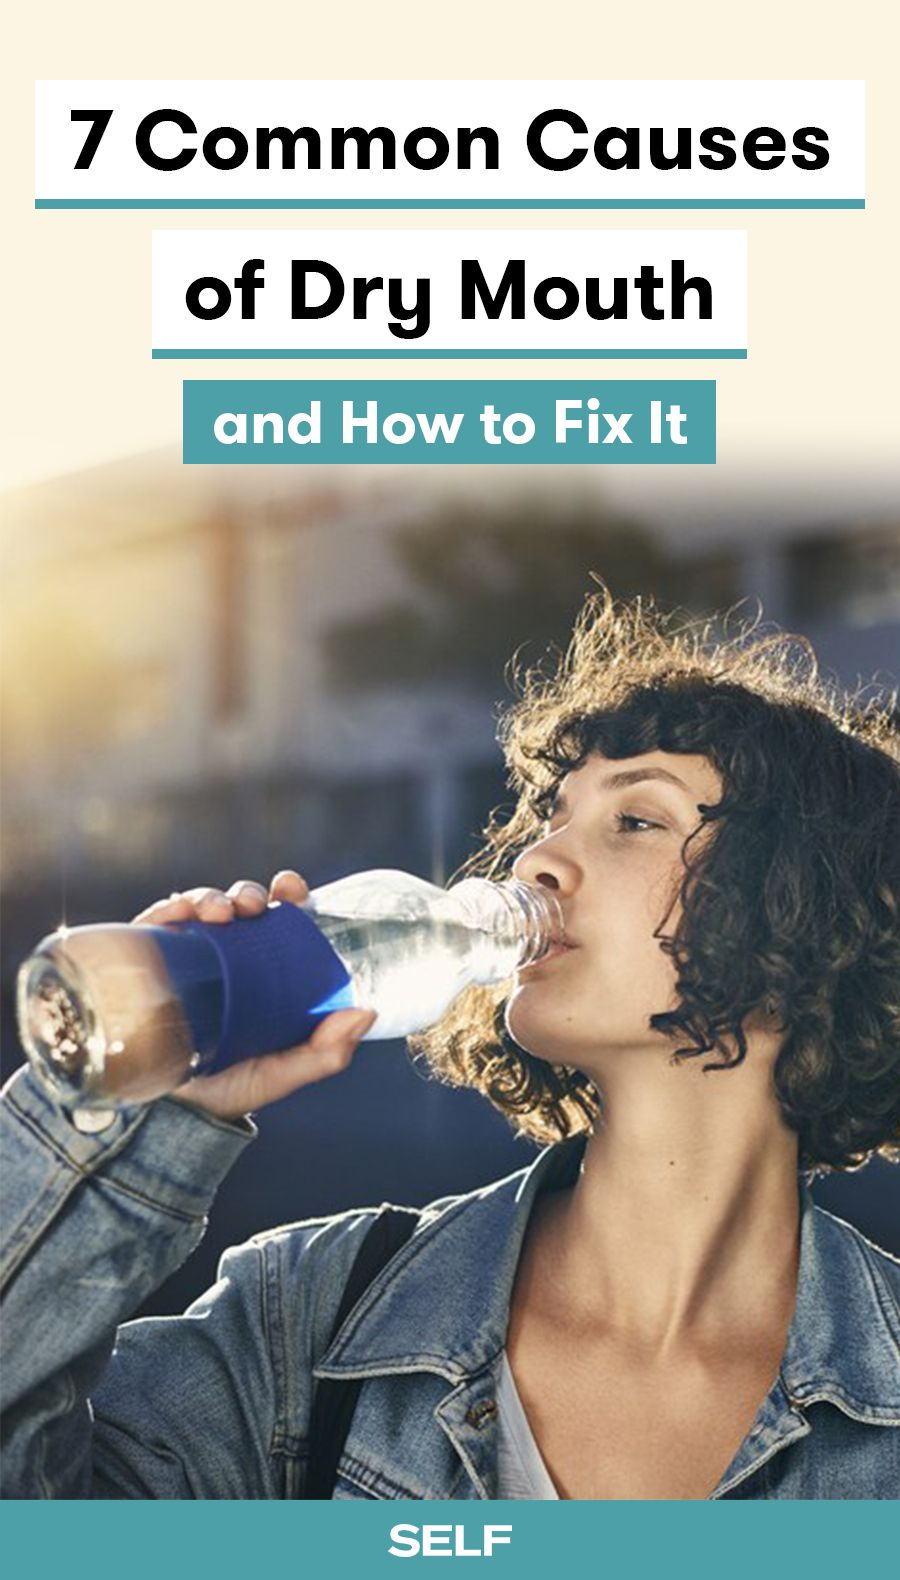 7 Common Causes of Dry Mouth—and How to Fix It Remedies